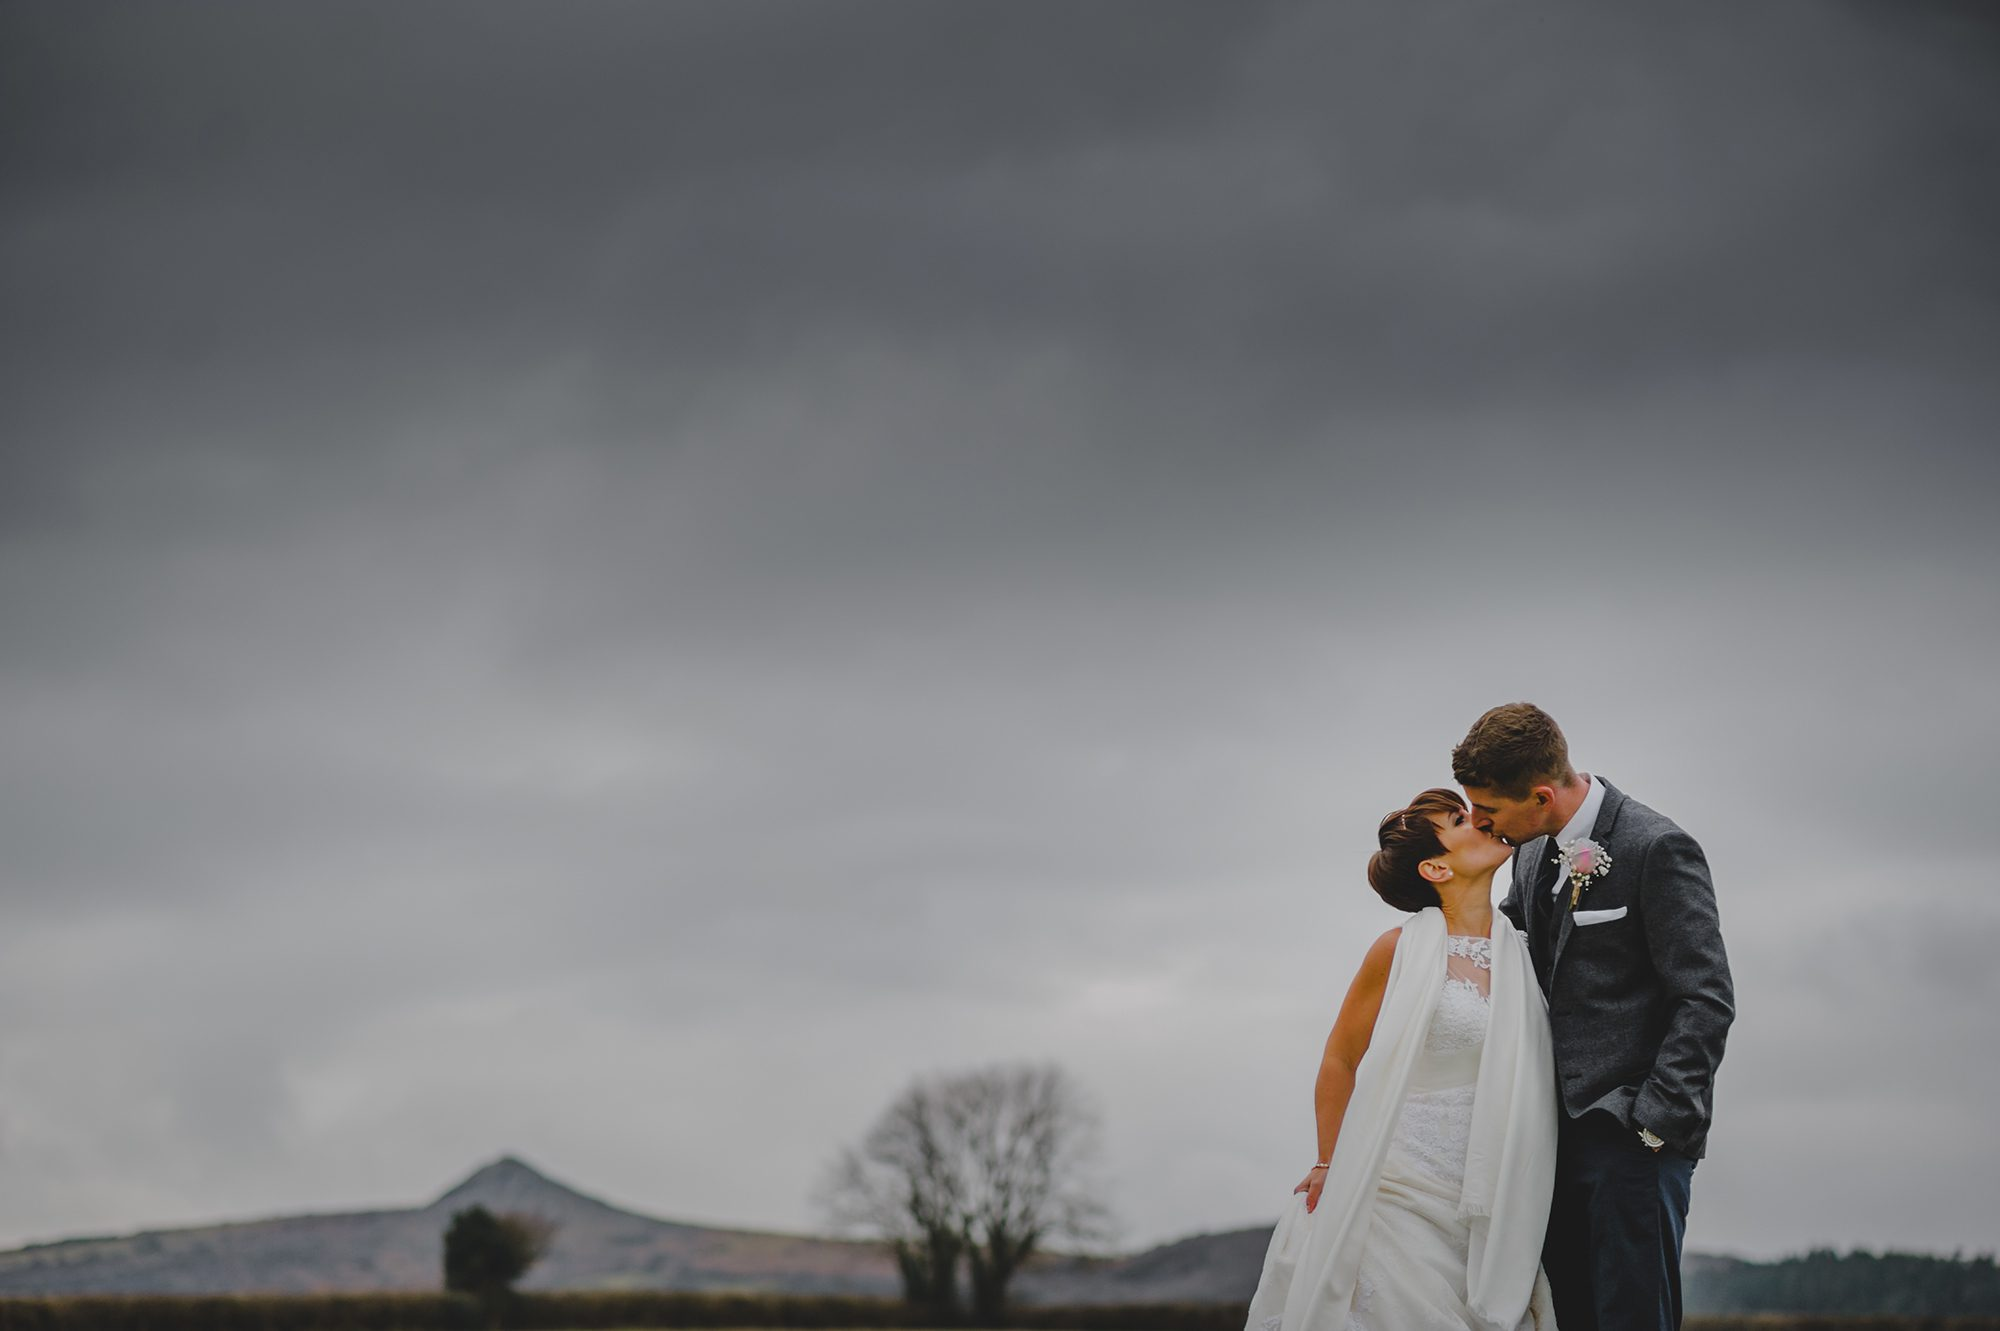 This image is a landscape shot with a couple in the bottom right hand corner of the shot. The image is predominantly of the sky. The sky is very dark and moody. On the horizon you can see the tors of Bodmin Moor. There are some leafless trees in the background on the horizon. The couple are close to the camera in the right-hand corner. The bride has short dark hair and is wearing a white, short sleeved gown with lace at the neckline. She has a stole around her shoulders. The groom is wearing a grey suit, a white shirt and a dark tie. The bride is turned towards the camera but her head is turned towards the groom. The groom is turning slightly towards the bride as they lean towards each other for a kiss.